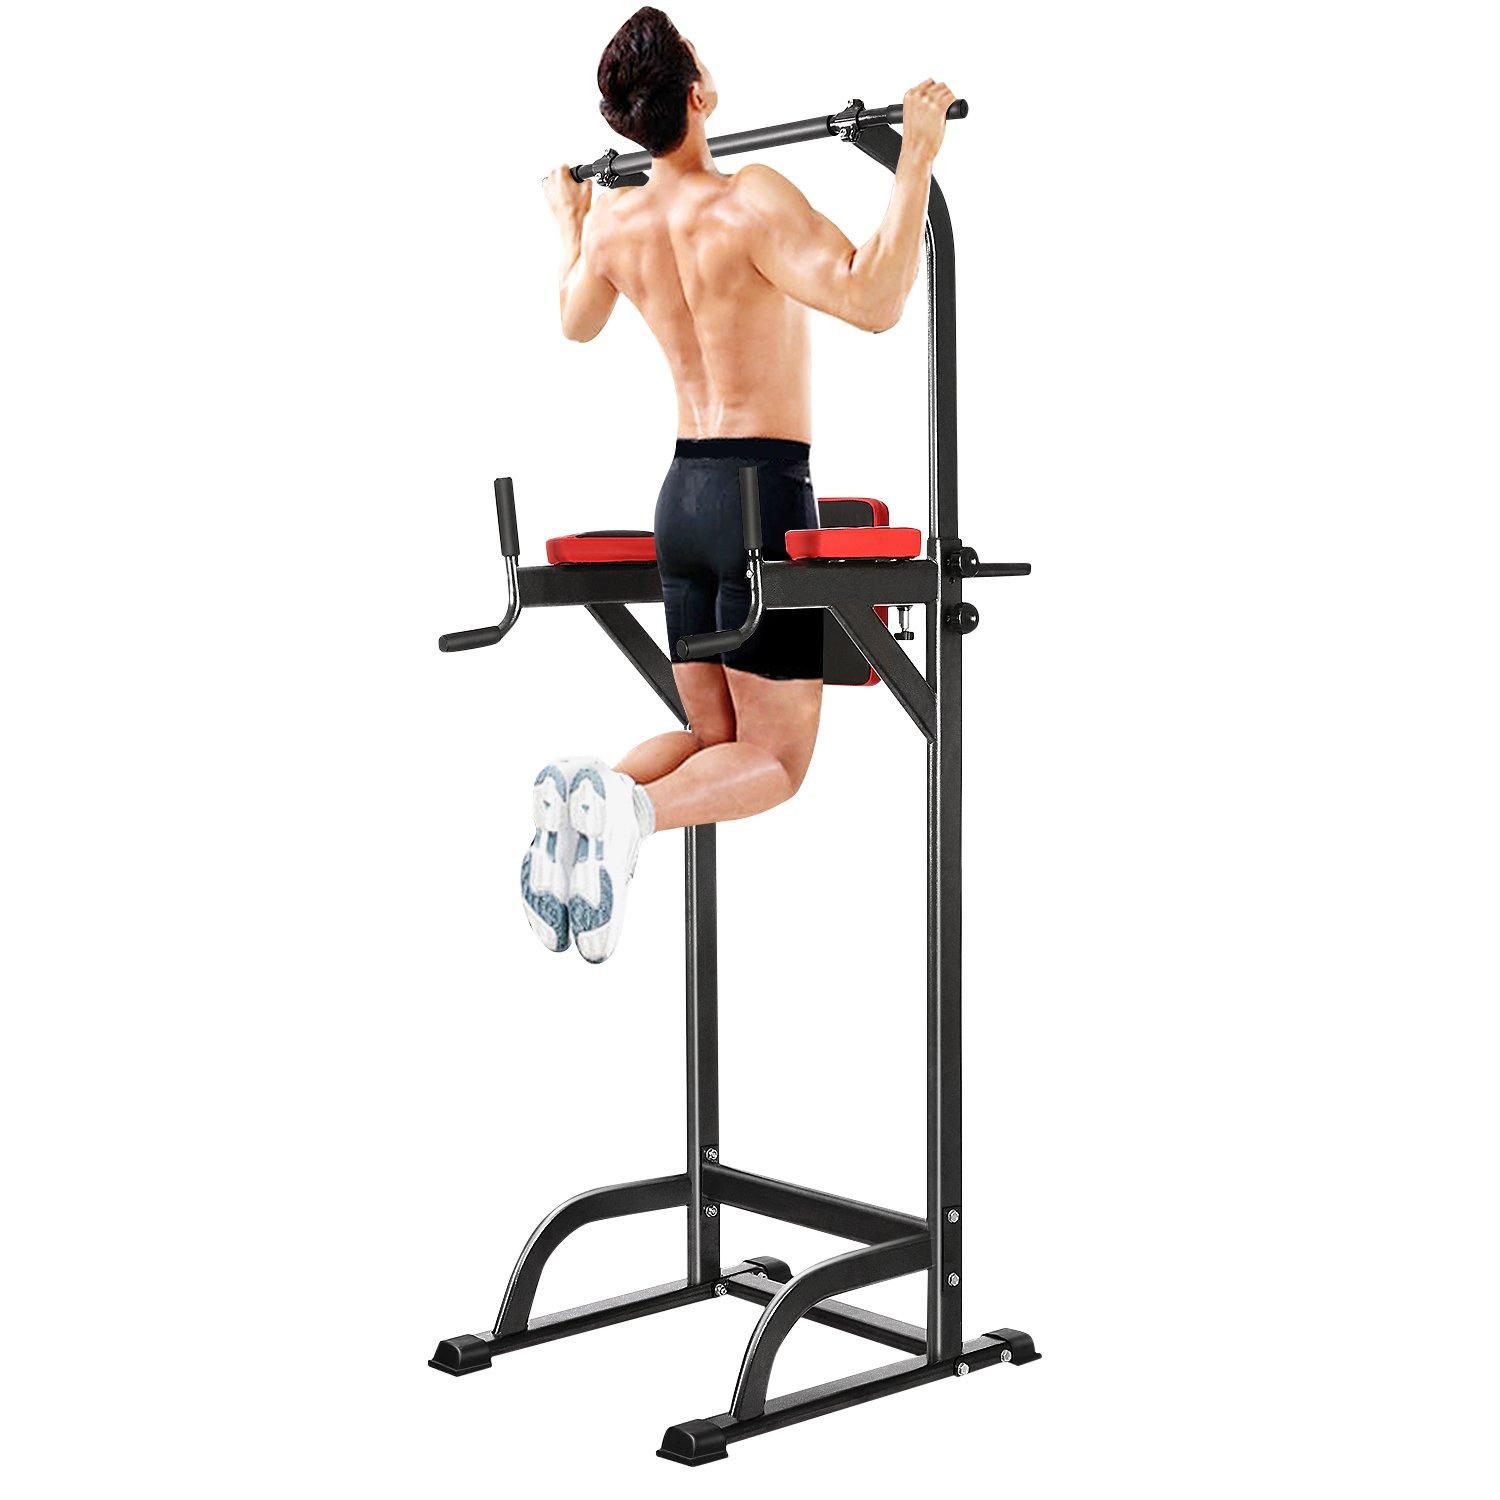 Vansop Adjustable Sturdy Steel Power Tower Multi-Functional Exercise Stand Workout Pull-Up, Push-Up, Dip Station, Knee Raise with Cushion Pad, Black by Vansop